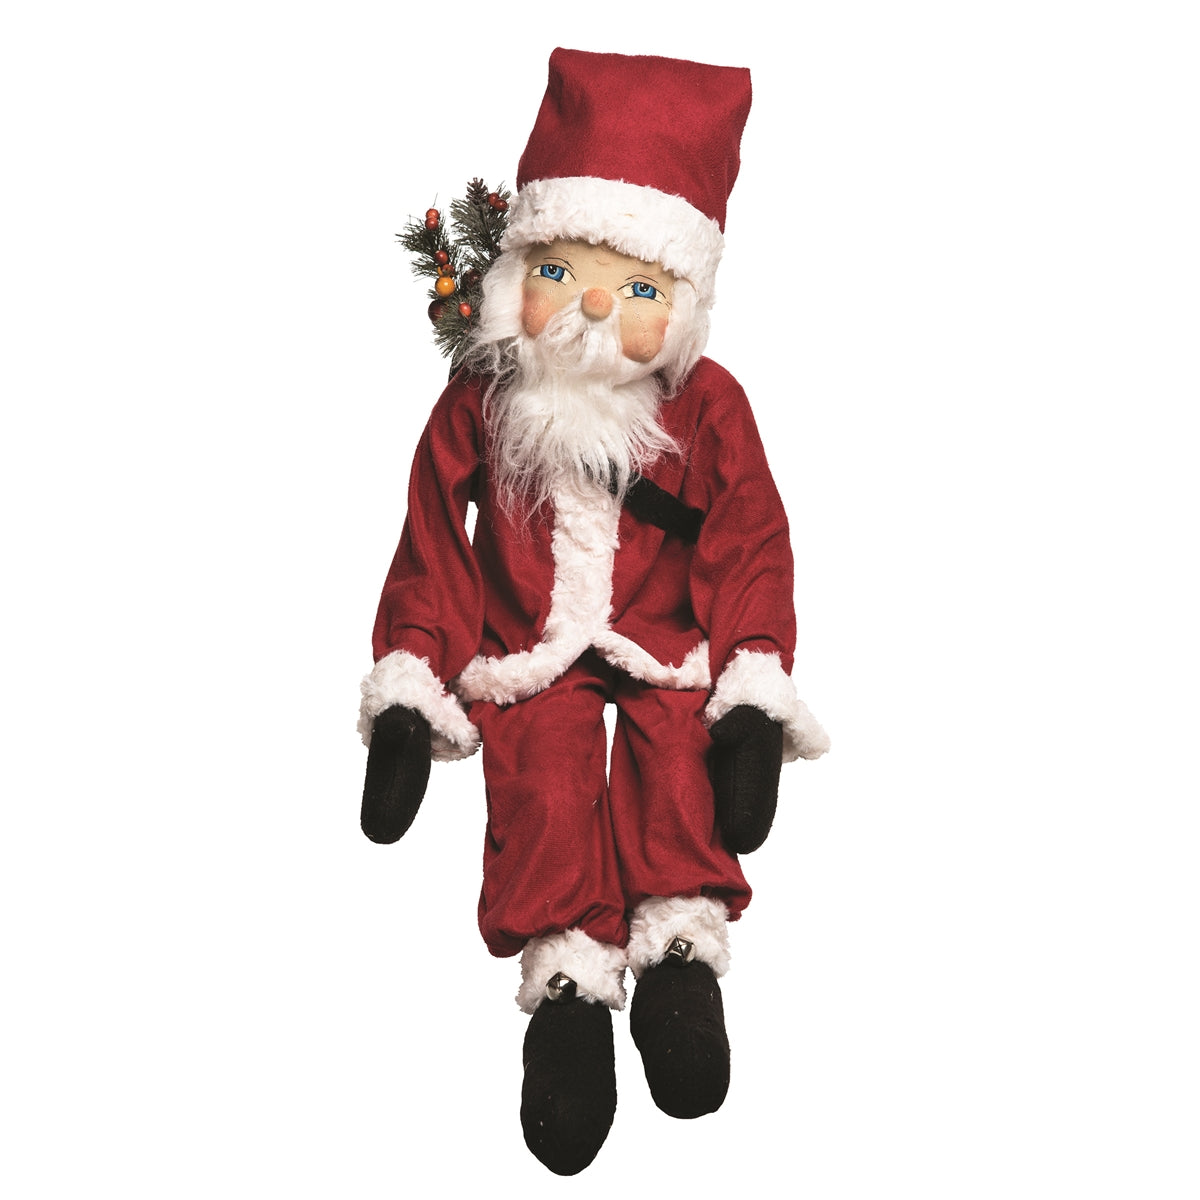 Joe Spencer Jonas Santa Doll